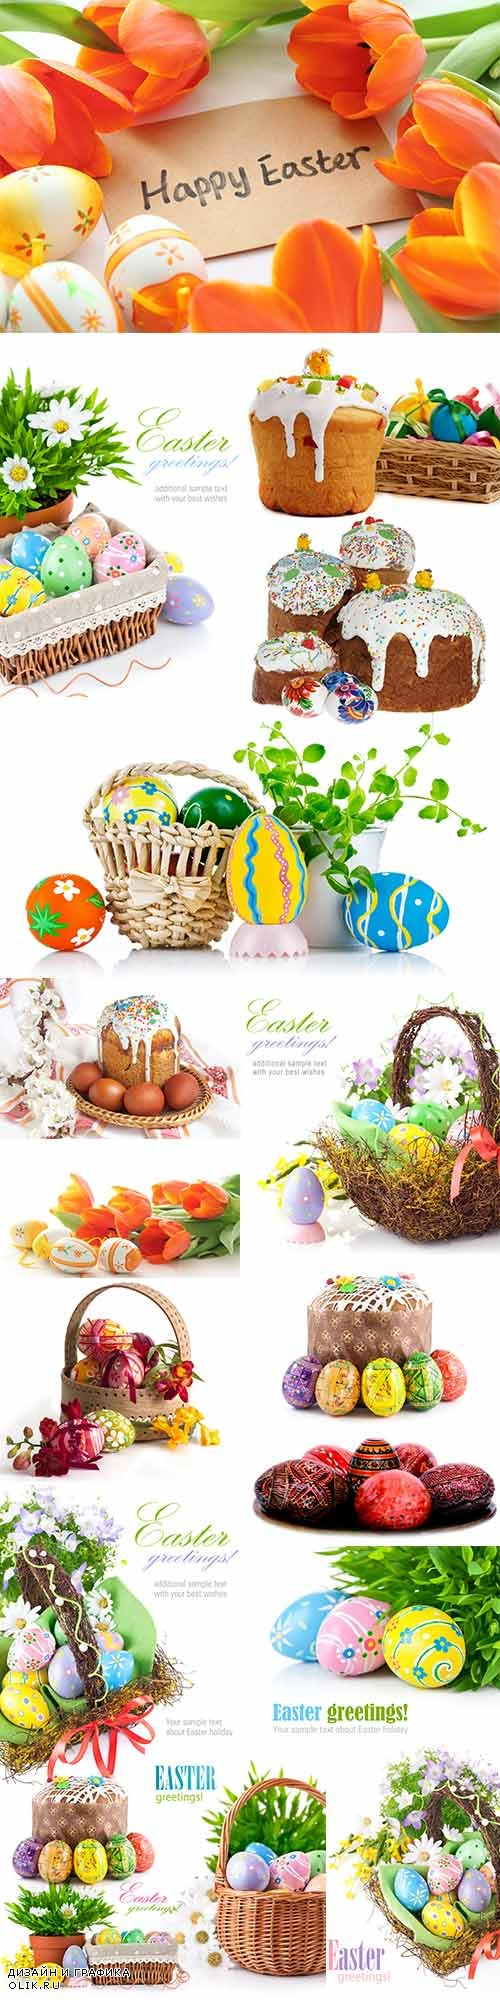 Happy Easter -3